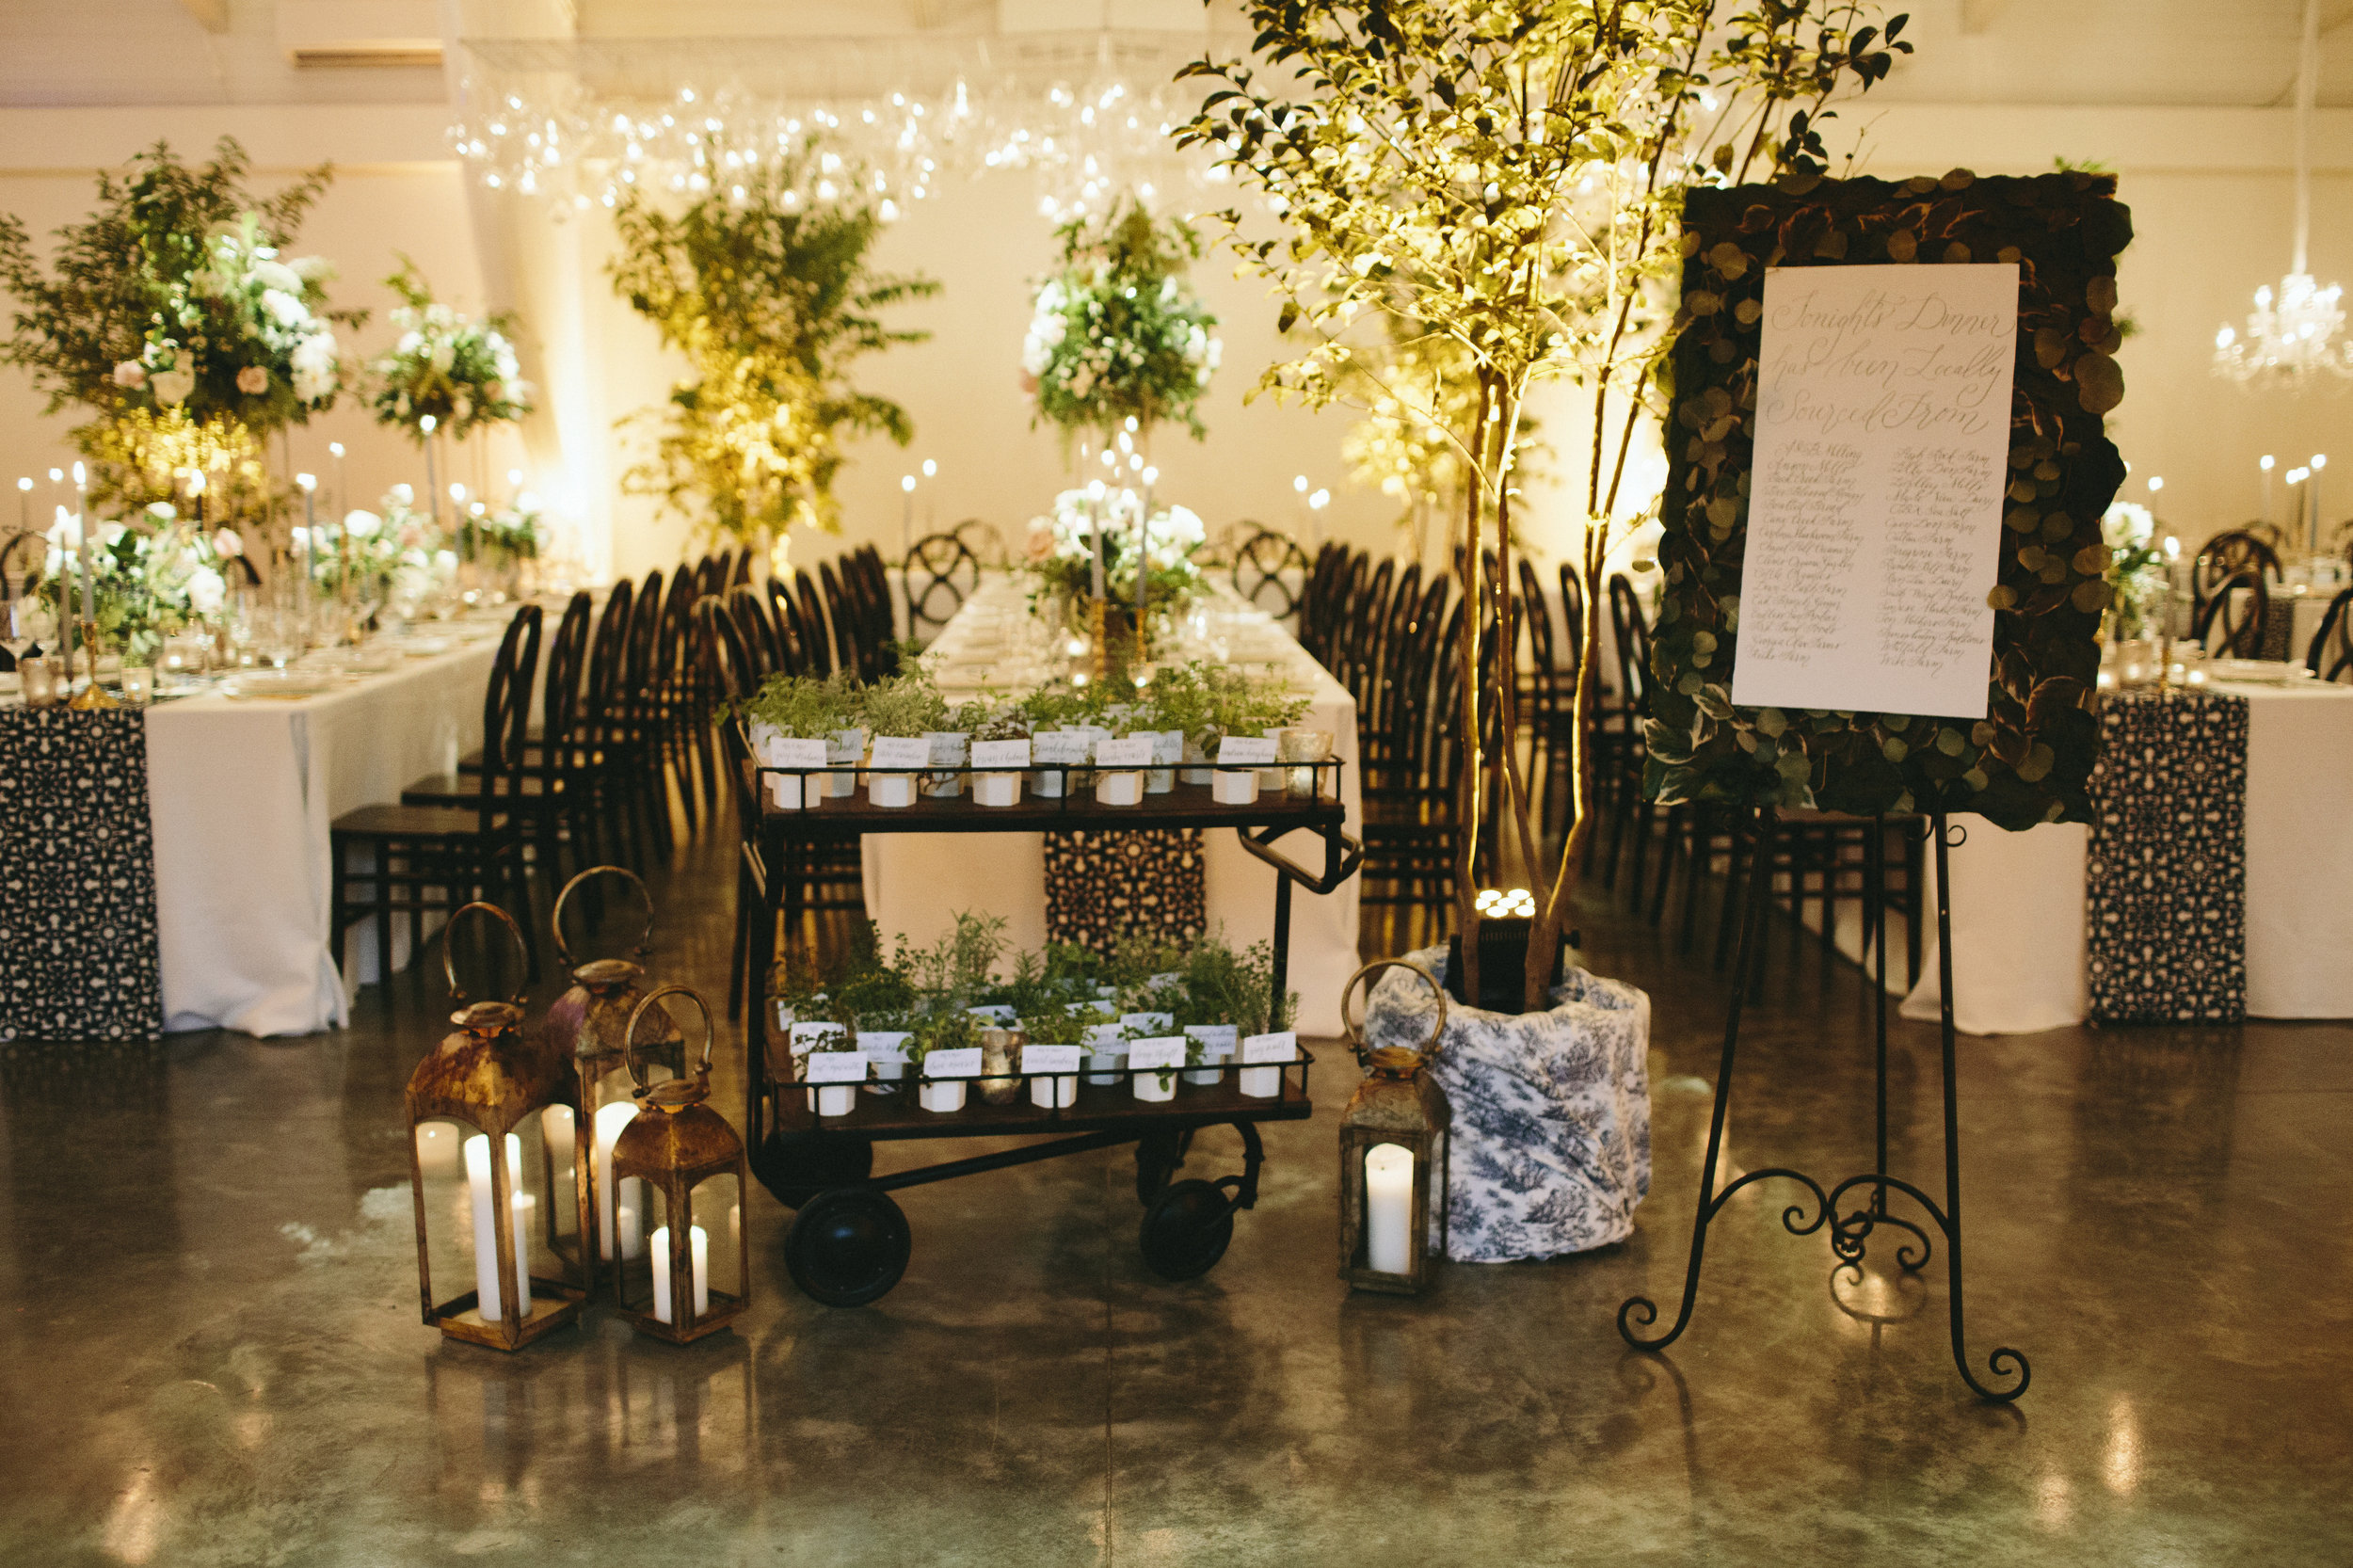 c8967-lauren26dylan27srestaurantinspiredweddingreceptionlauren26dylan27srestaurantinspiredweddingreception.jpg